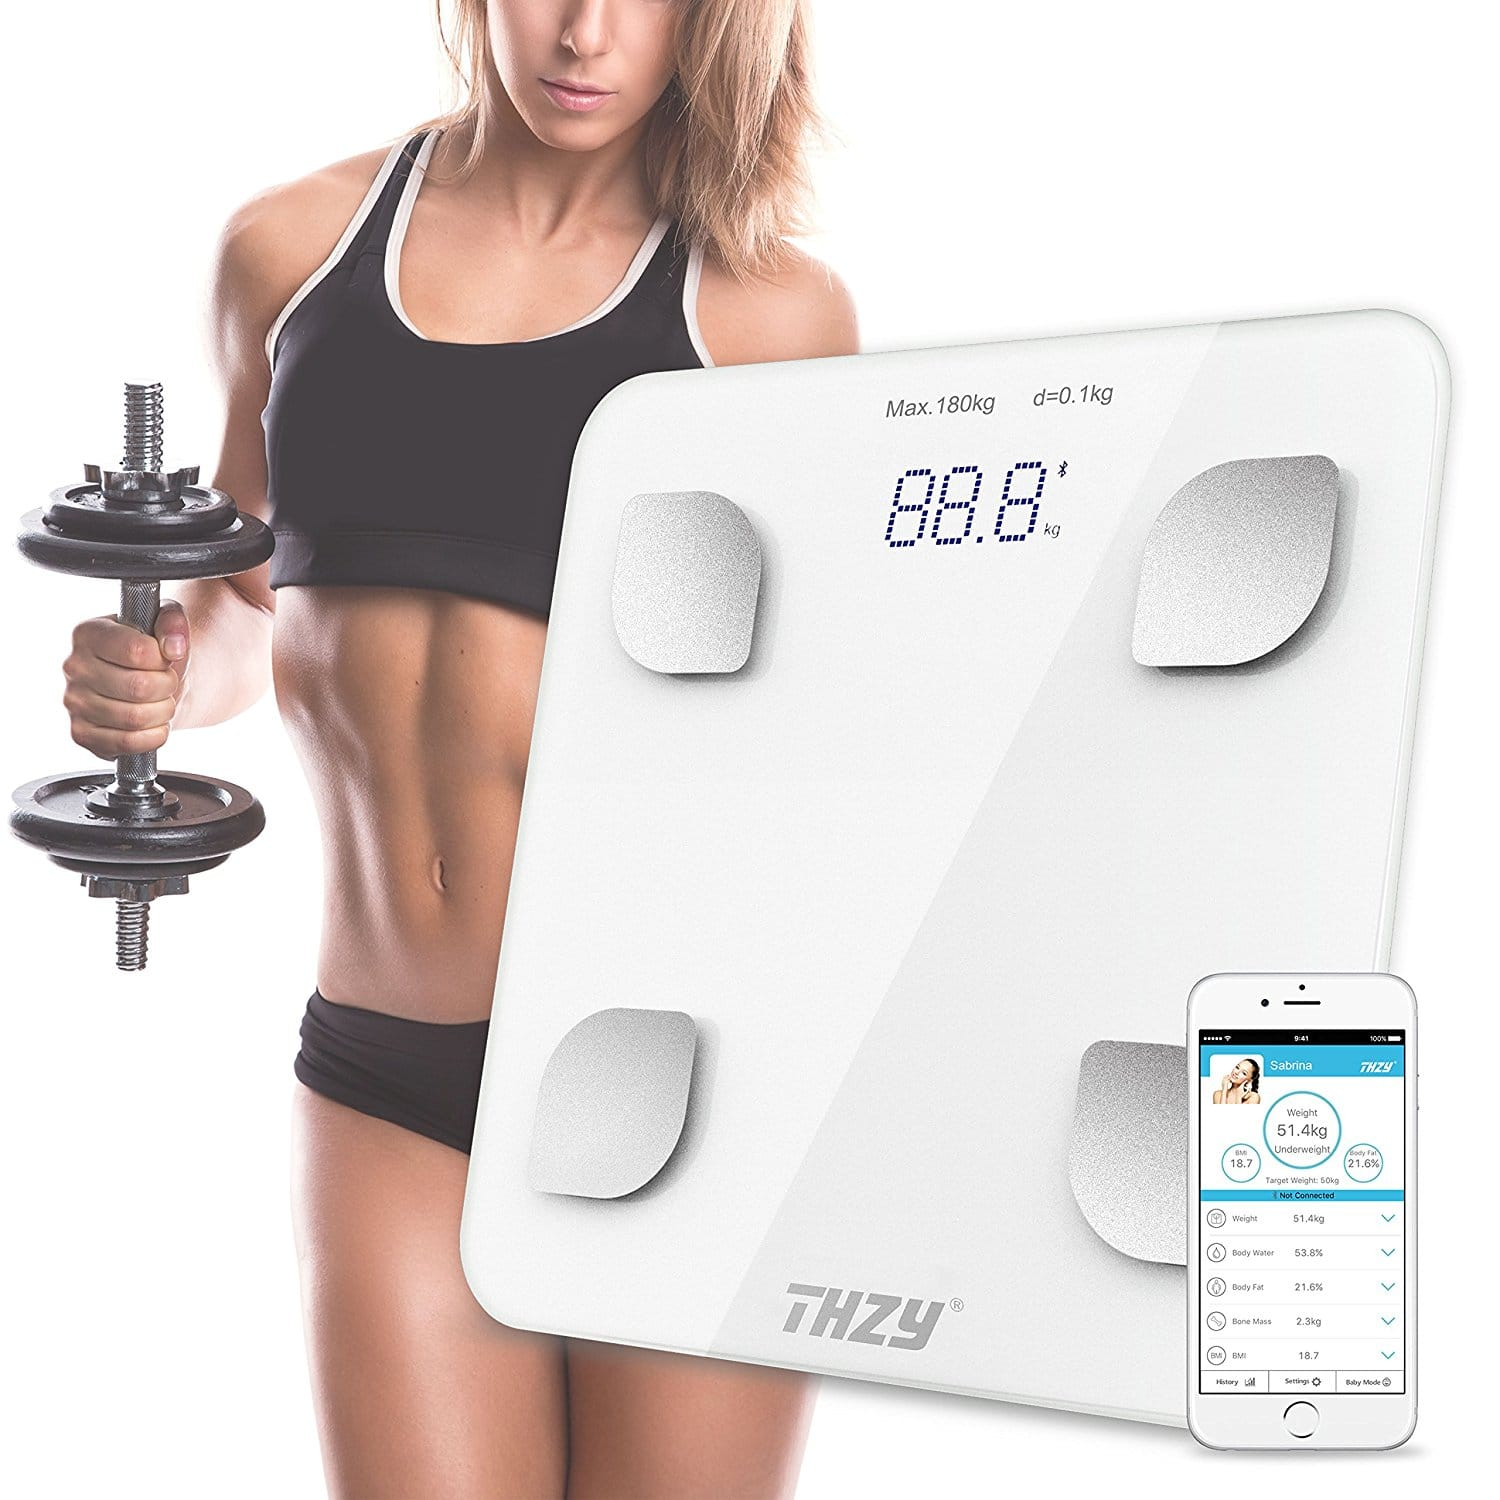 Bluetooth Multi-Functional Body Weight Scale for $22.19 (40% off)